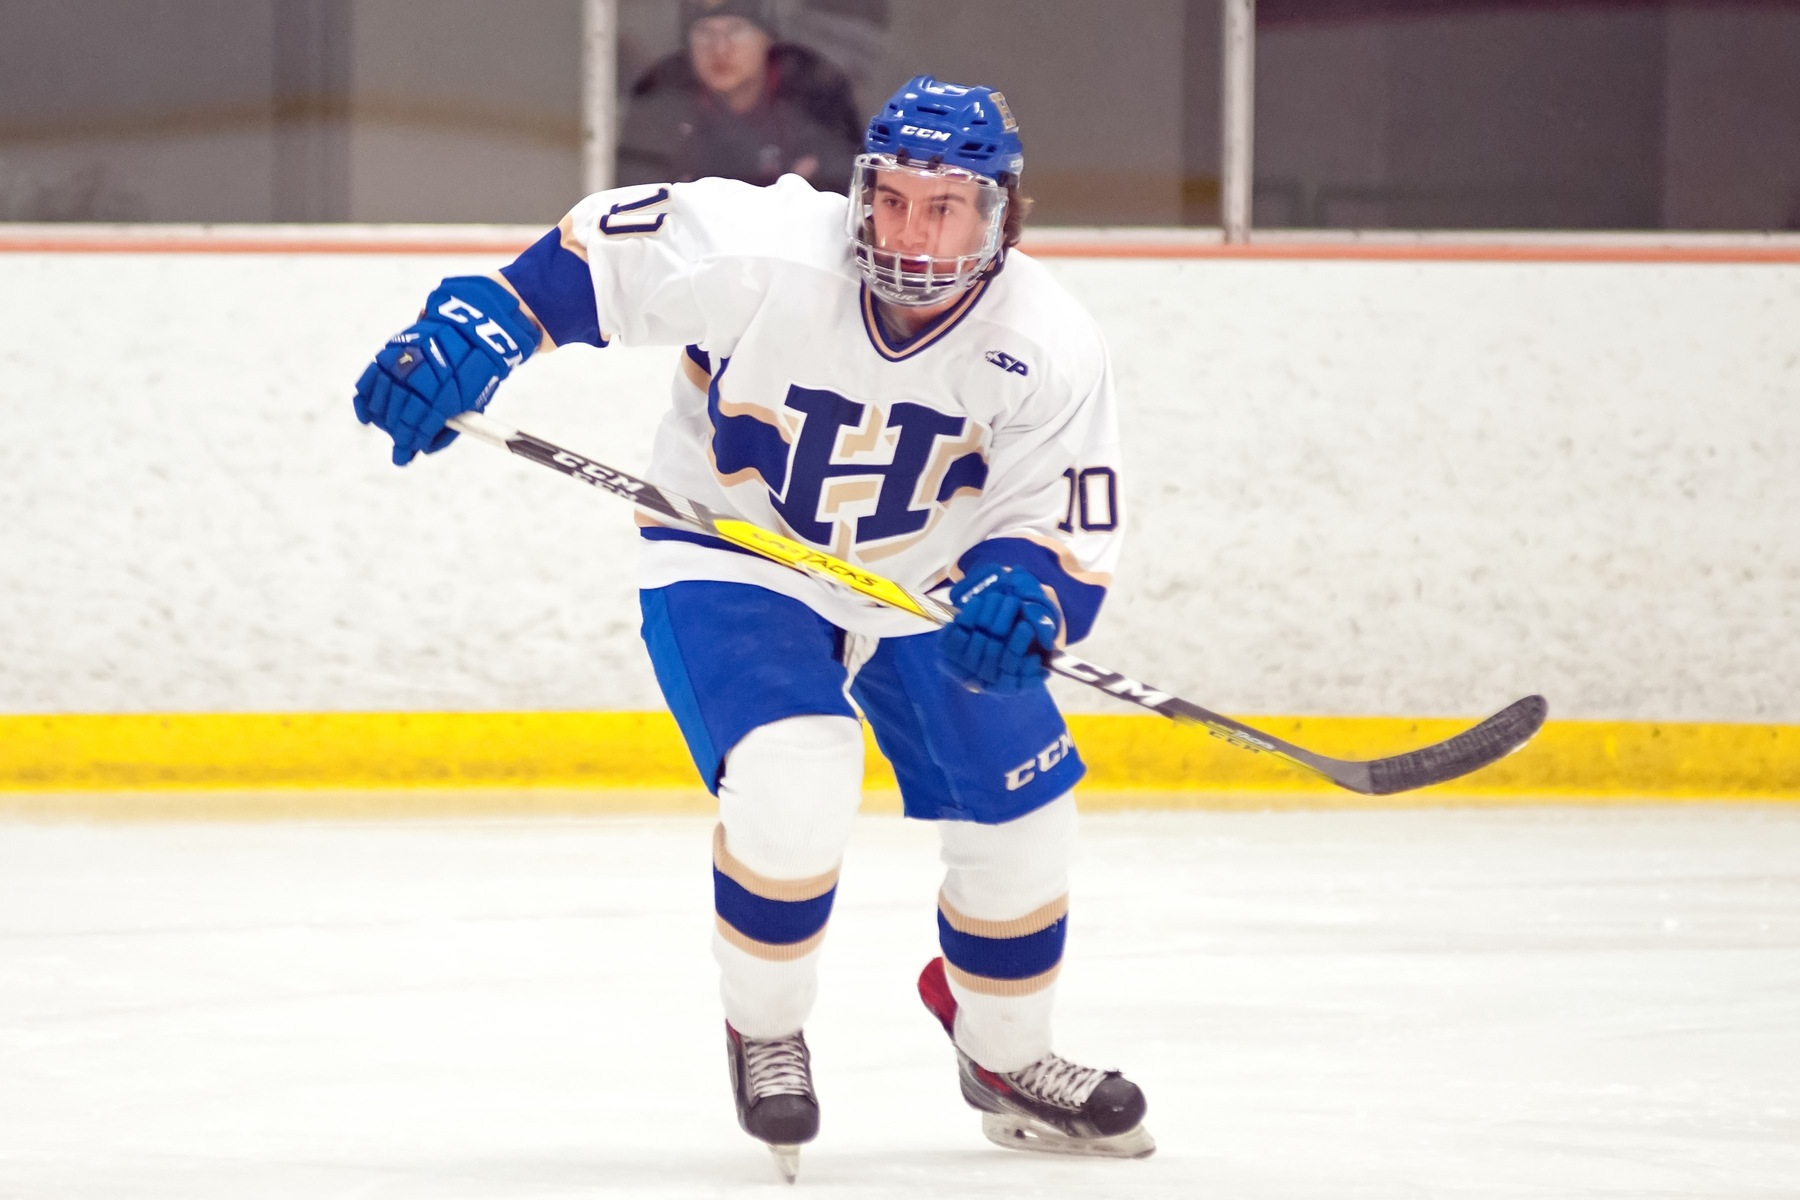 Rory Gagnon '19 scored the 12th goal of his Hamilton career against SUNY Canton (Michael P. Doherty photo)